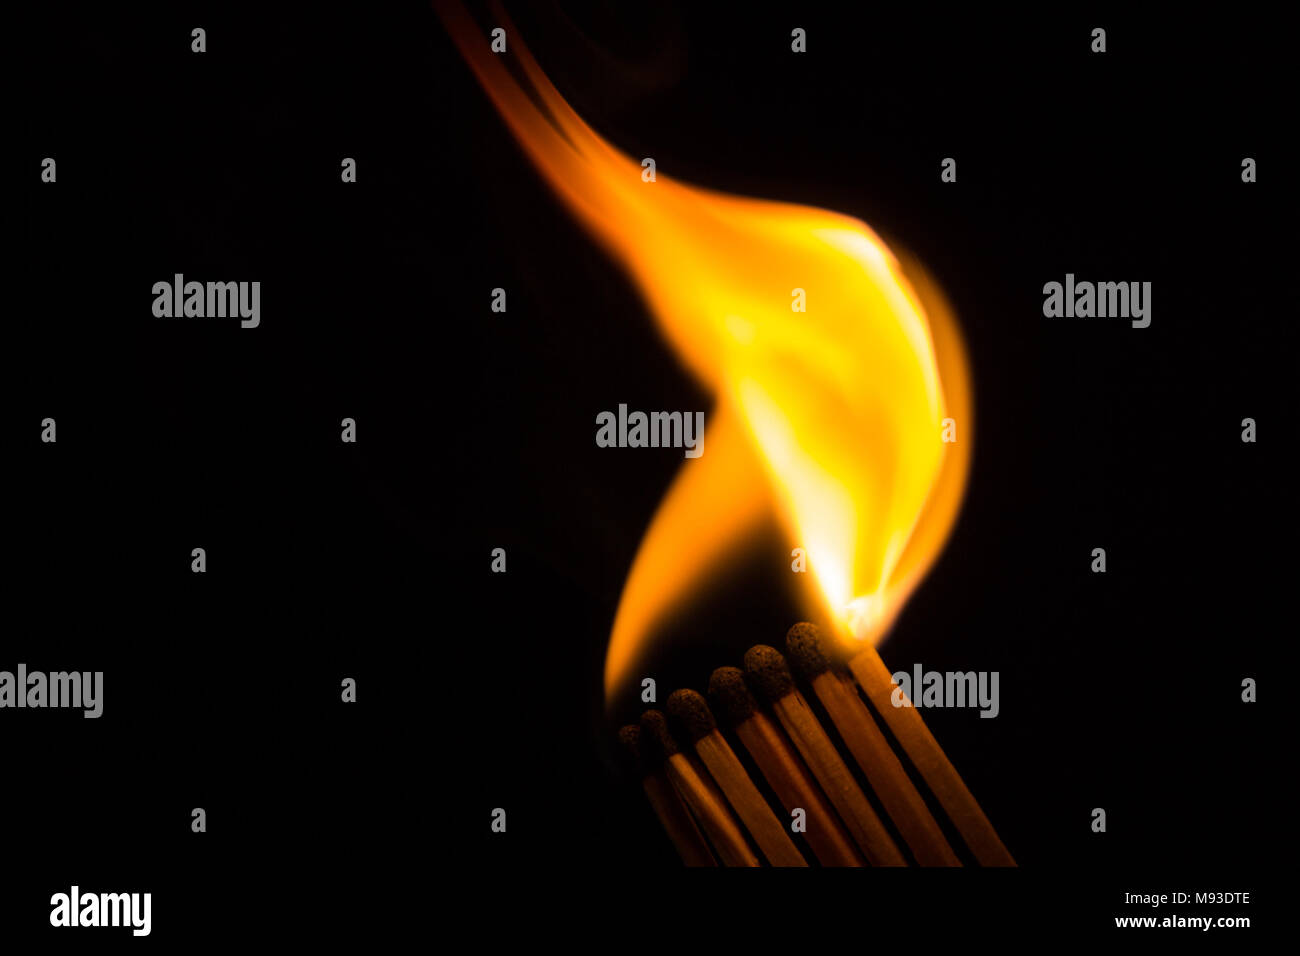 A row of matches is being ignited, spreading the fire - Stock Image